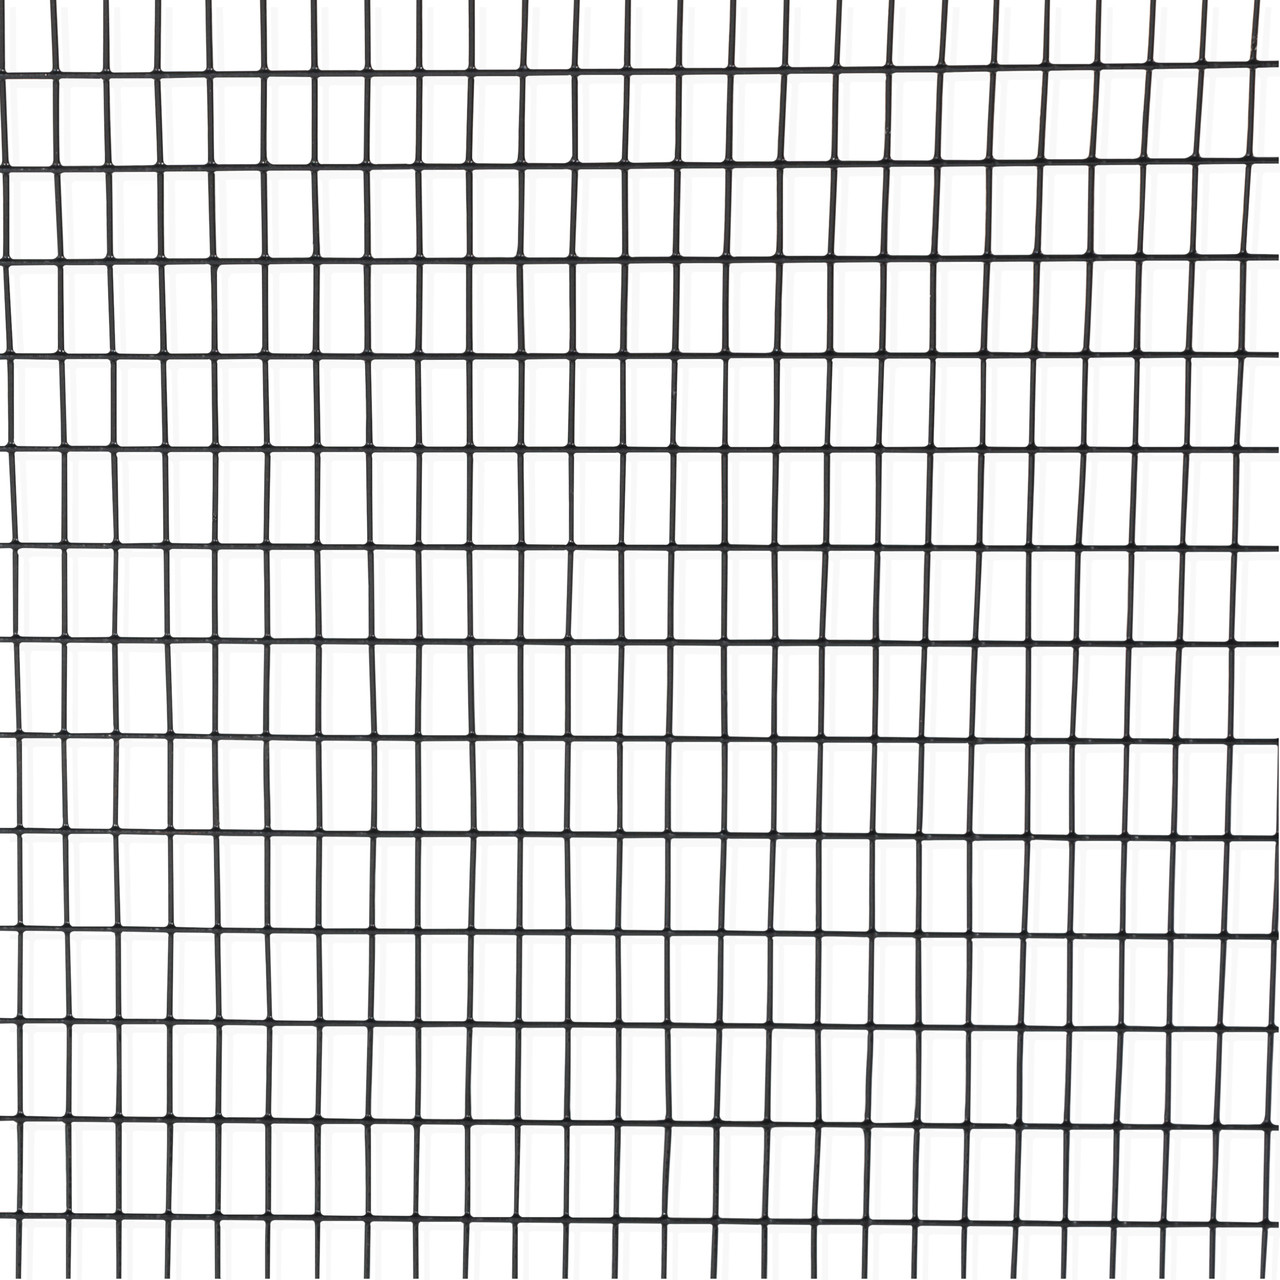 Cool 6x6xw2 1xw2 1 wire mesh sheet sizes contemporary electrical charming welded wire mesh size chart gallery electrical system greentooth Image collections